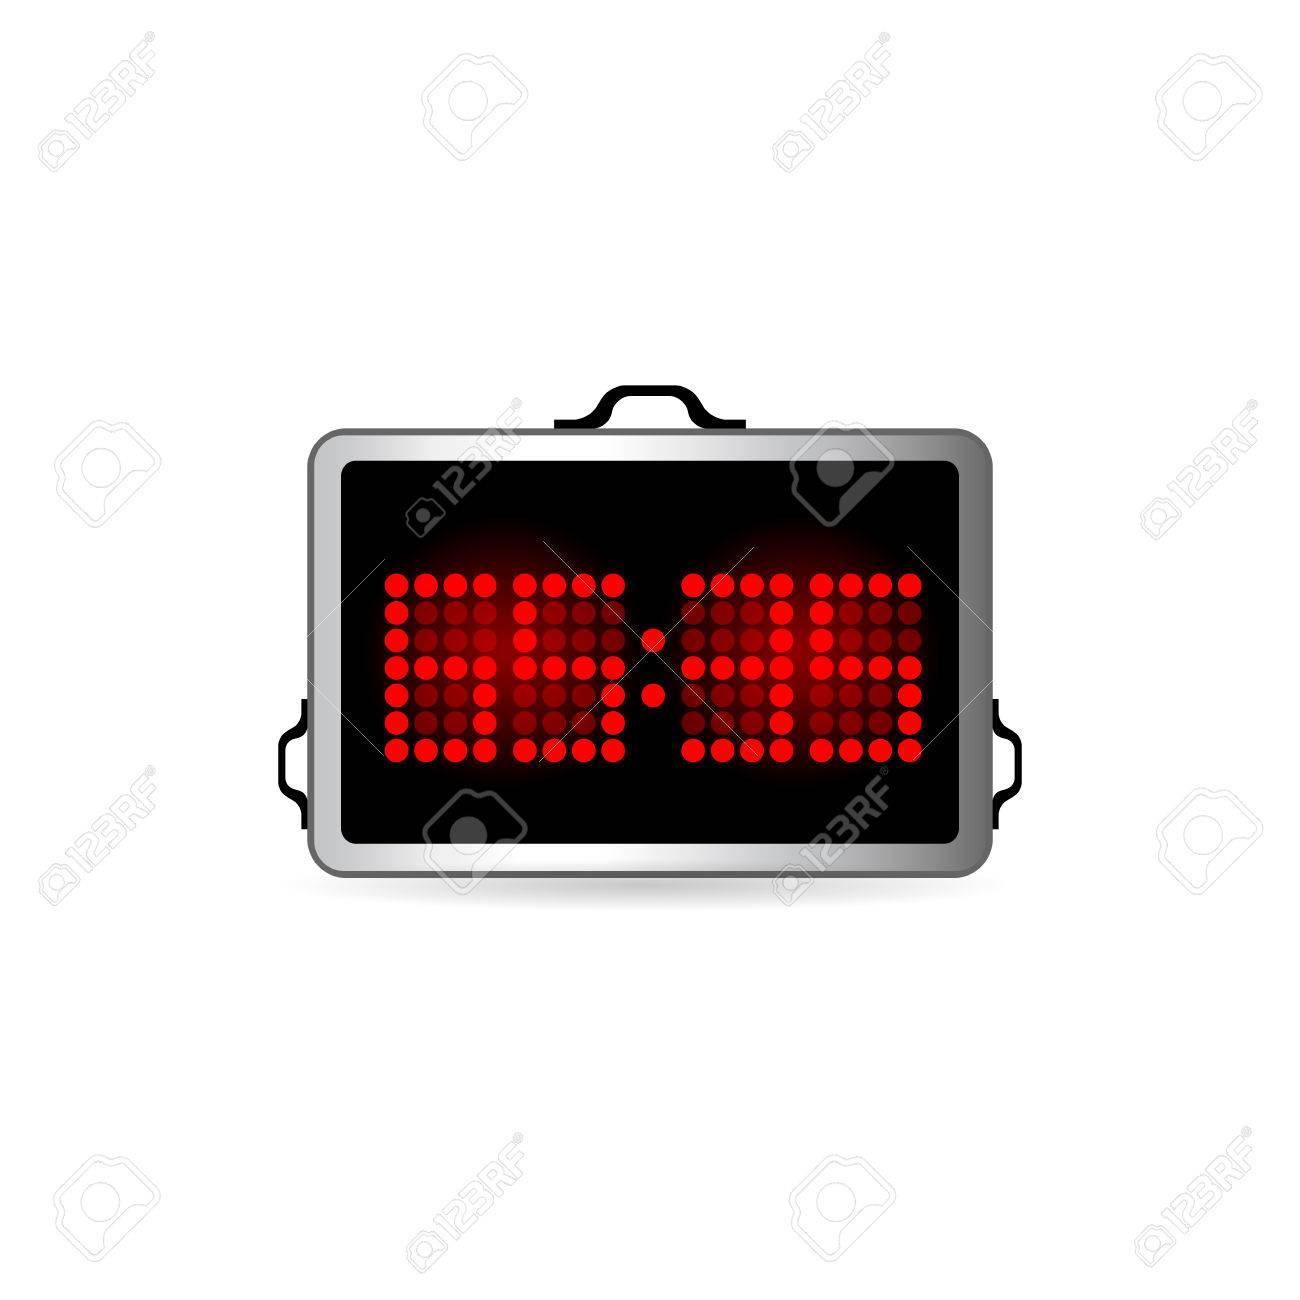 score board icon in color basketball game playing royalty free